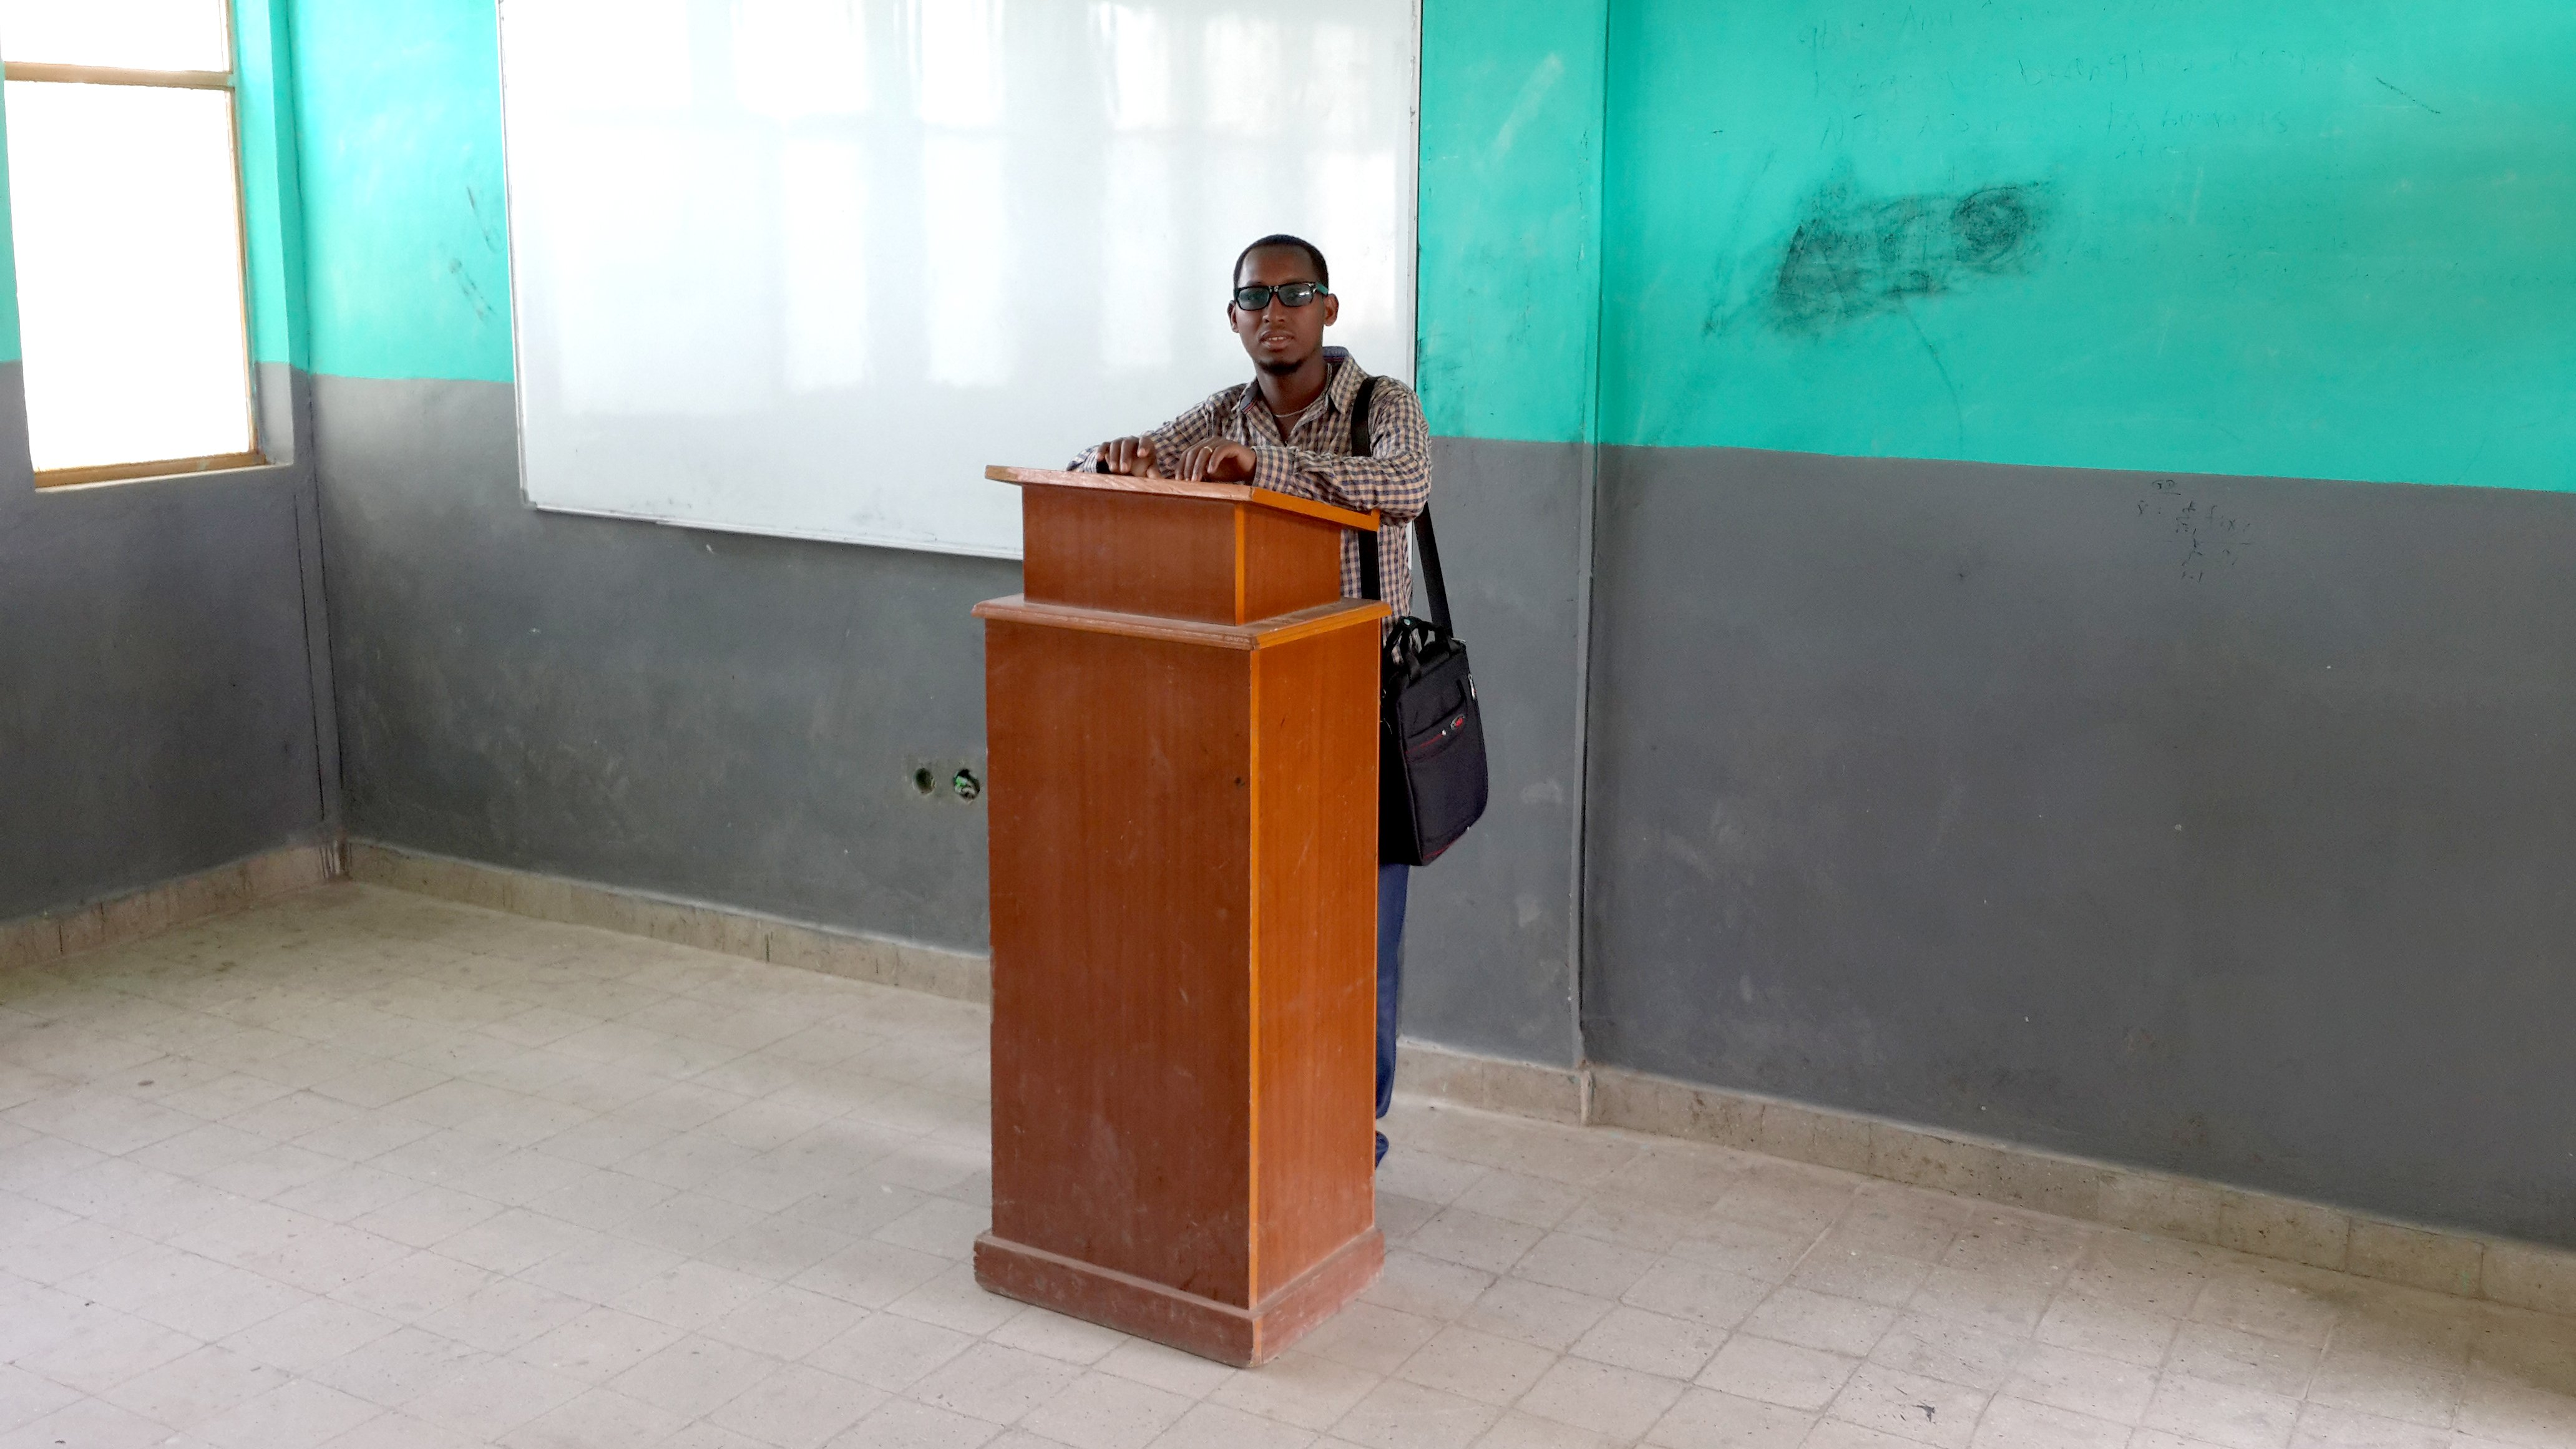 Young man stands at podium in front of class